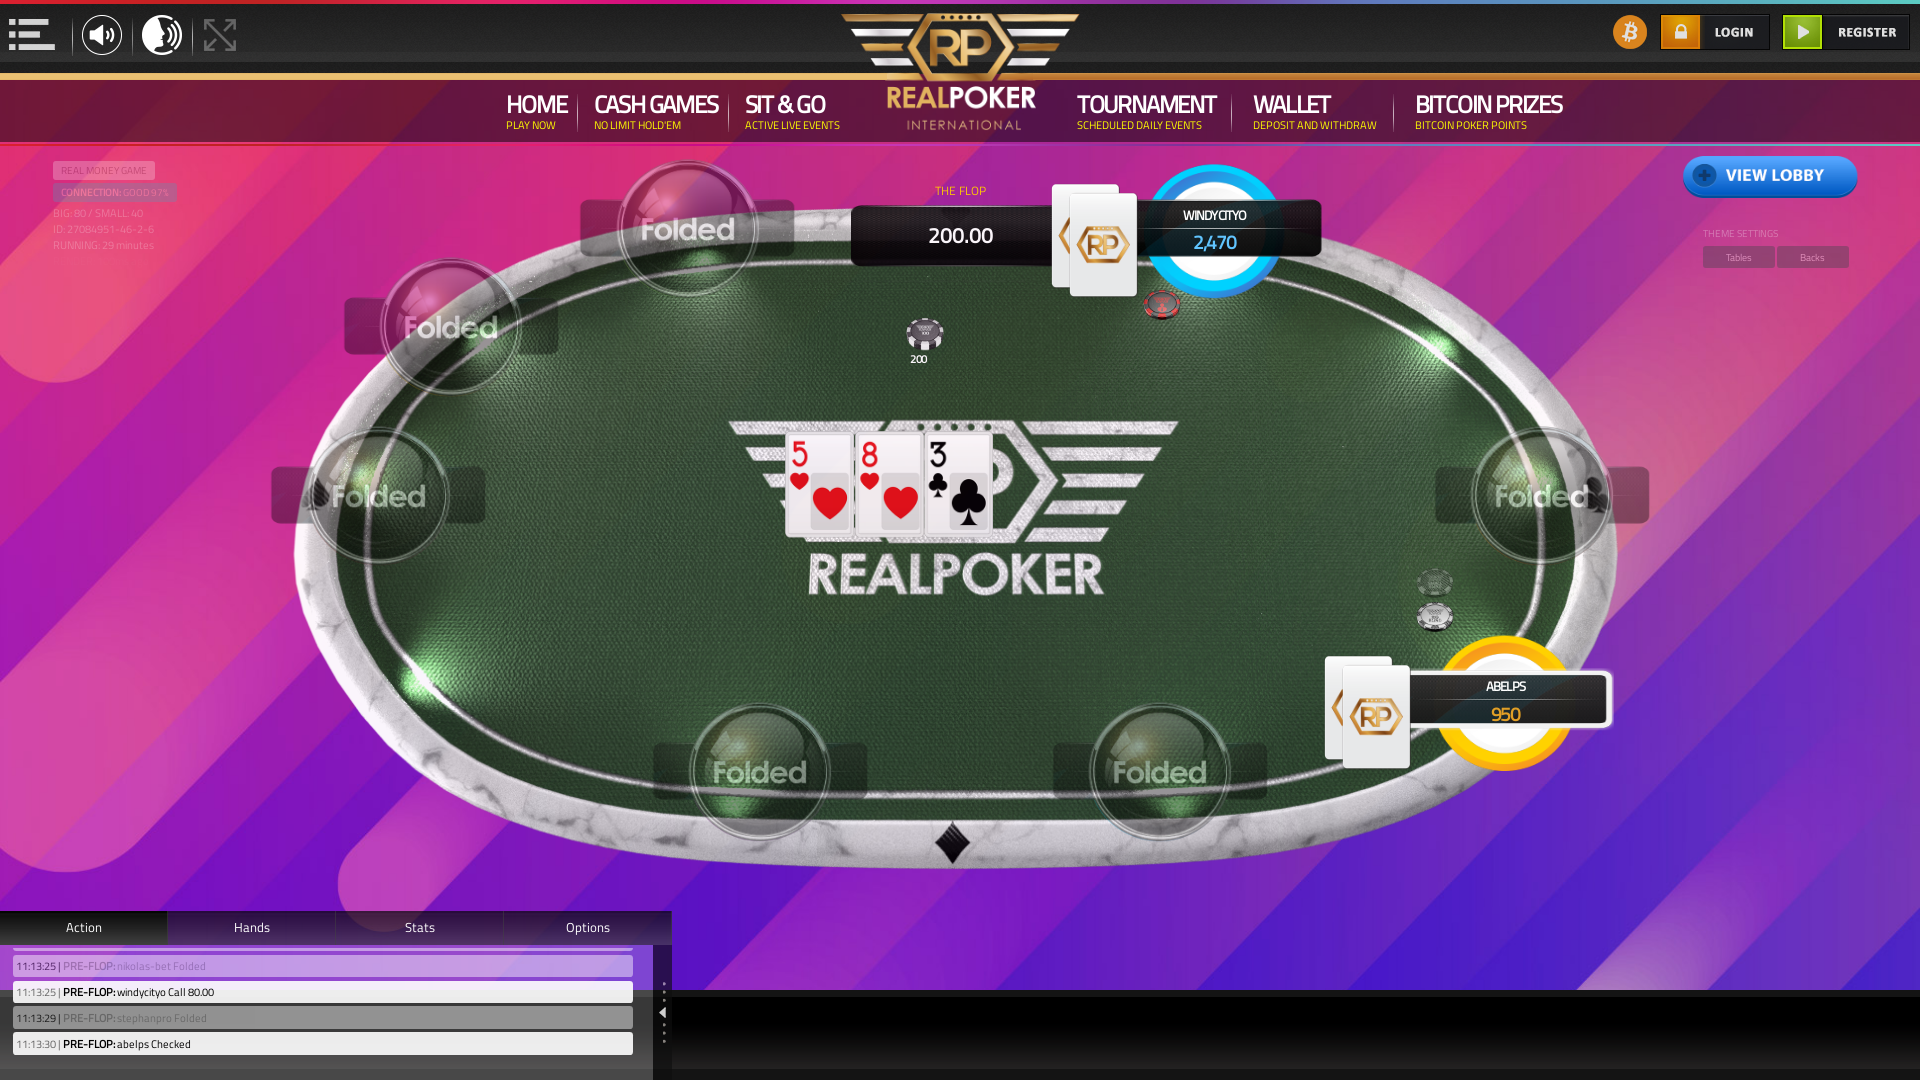 Online poker on a 10 player table in the 28th minute match up